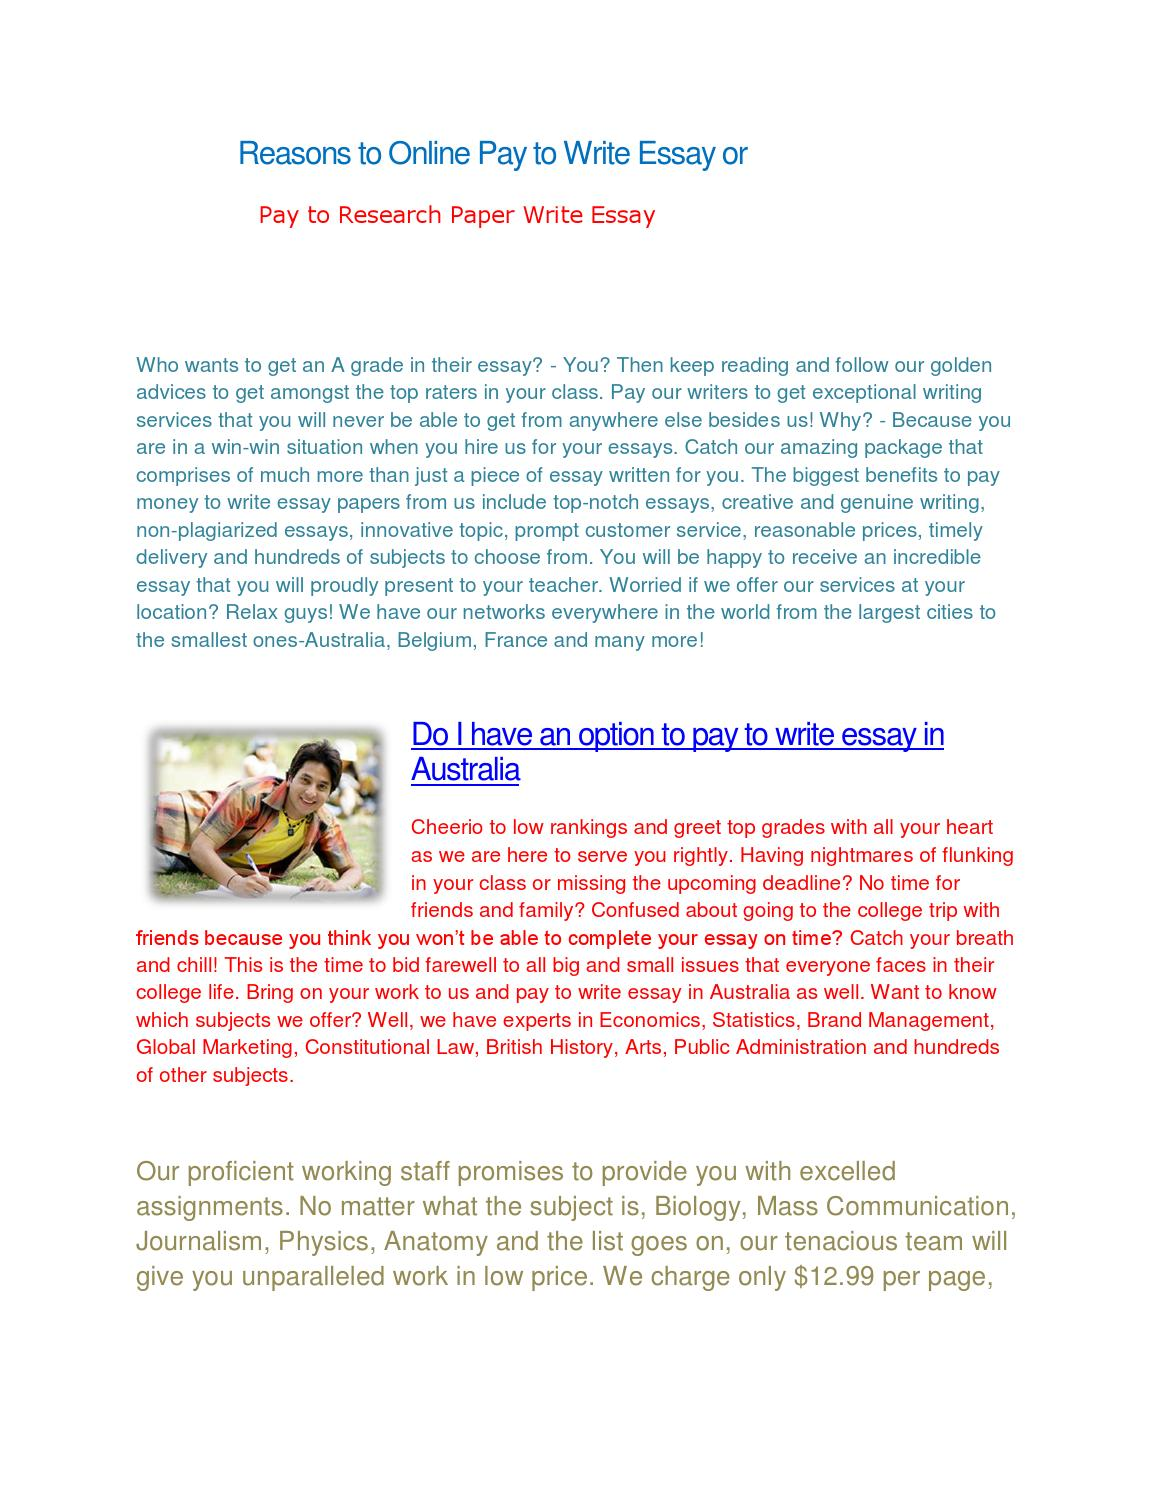 010 Research Paper Pay For Page 1 Excellent Equal Work In India Performance Writing Full